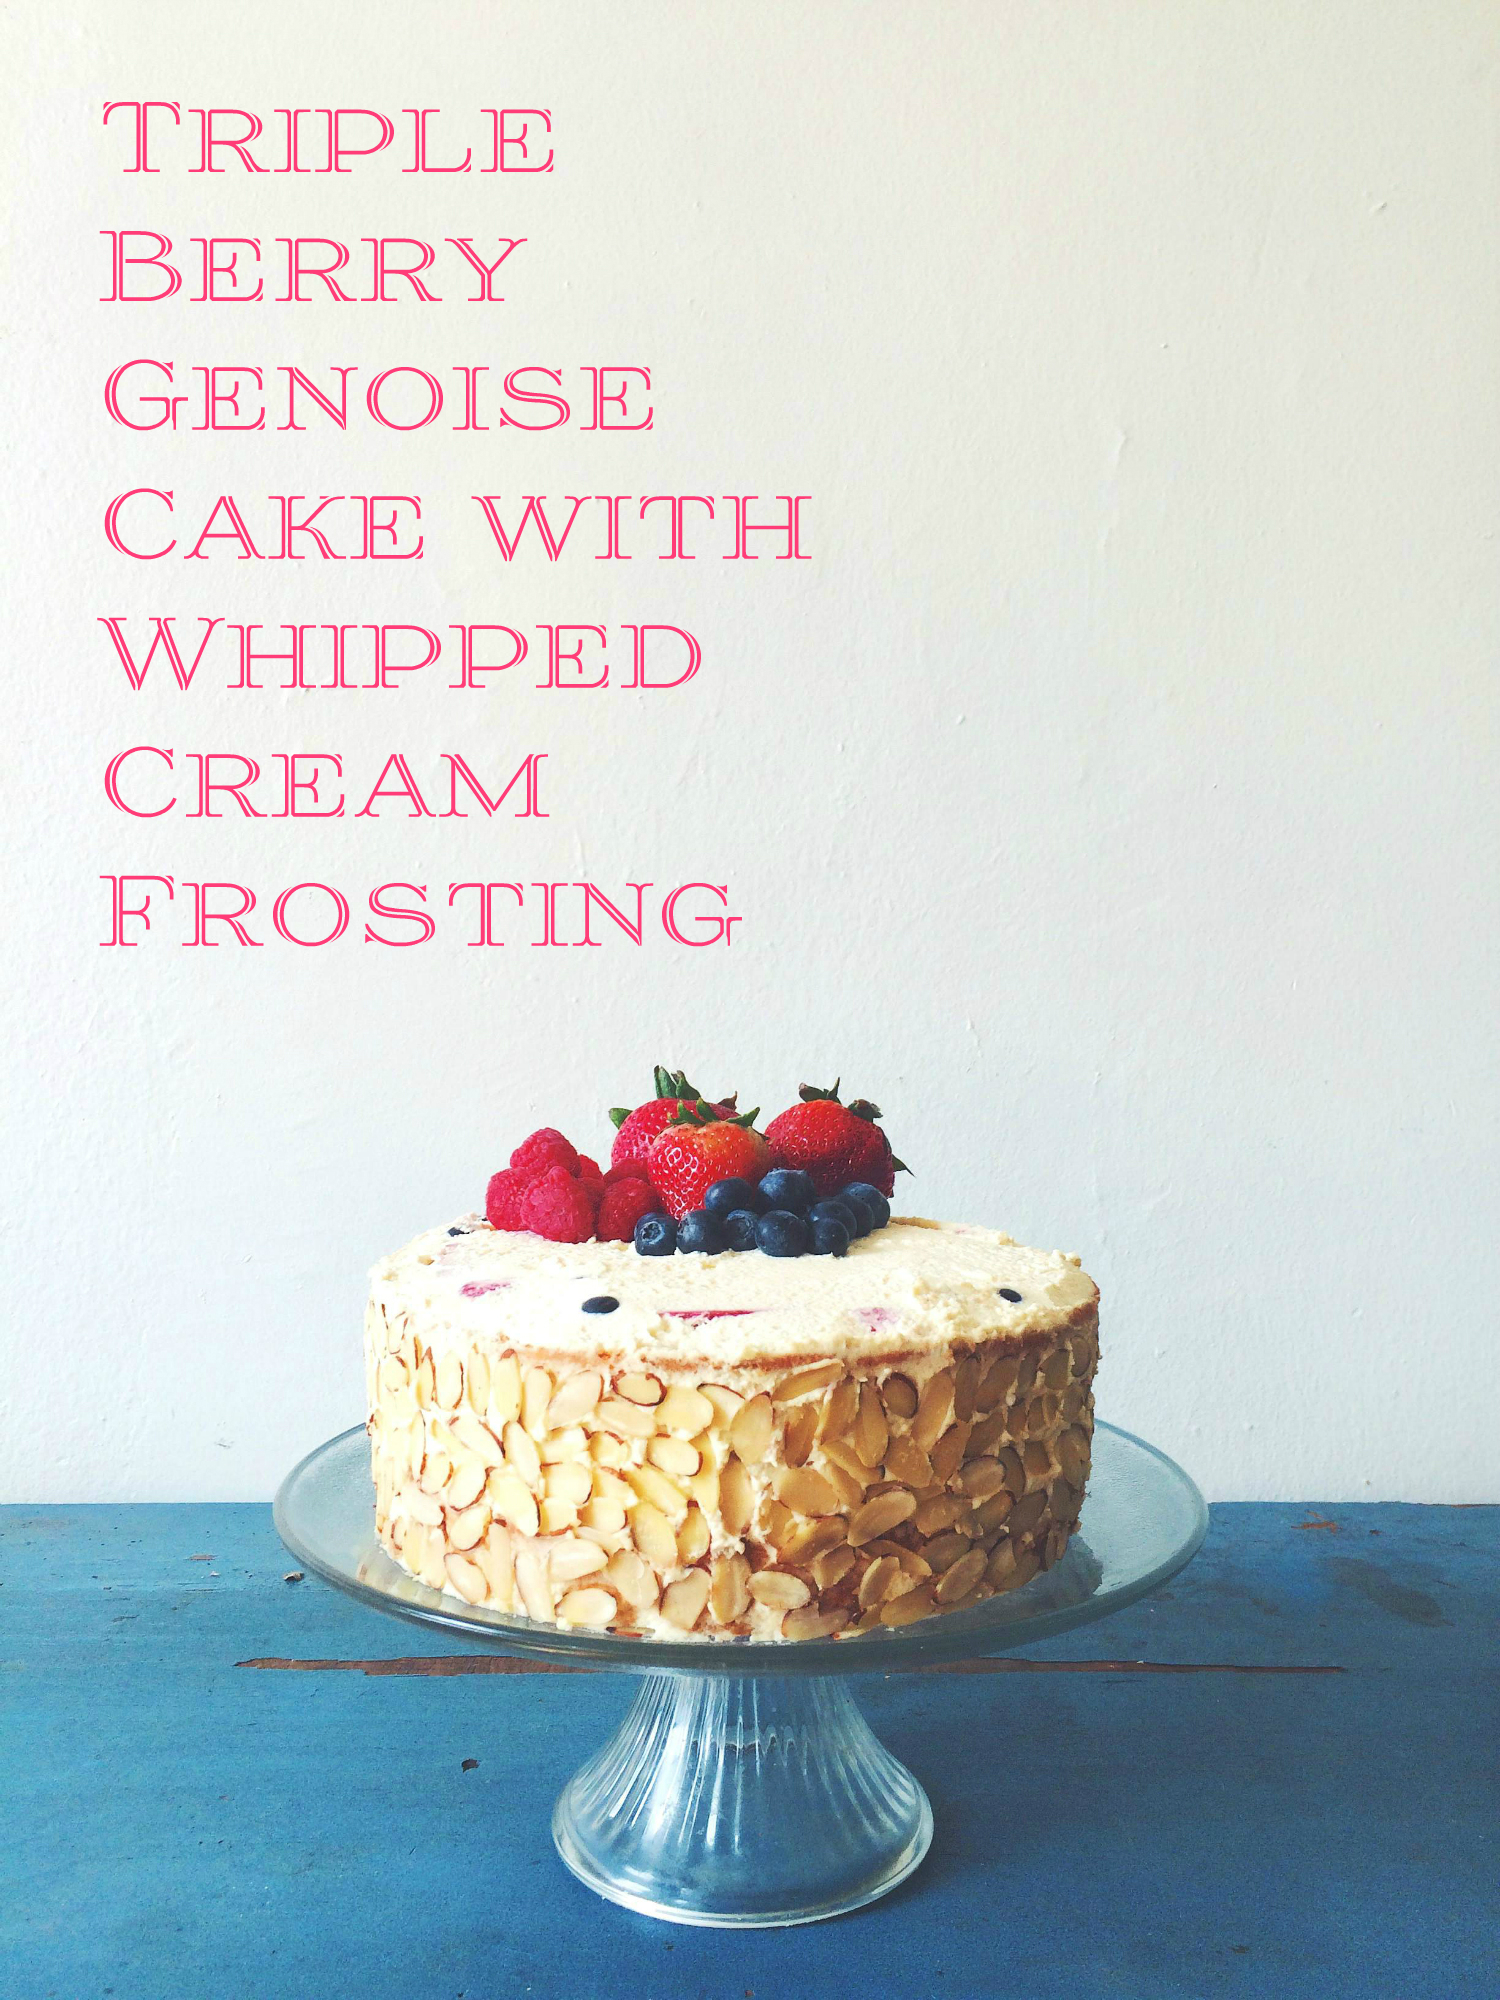 Cake With Whipped Cream Frosting Calories : Triple Berry Genoise Cake with Whipped Cream Frosting ...